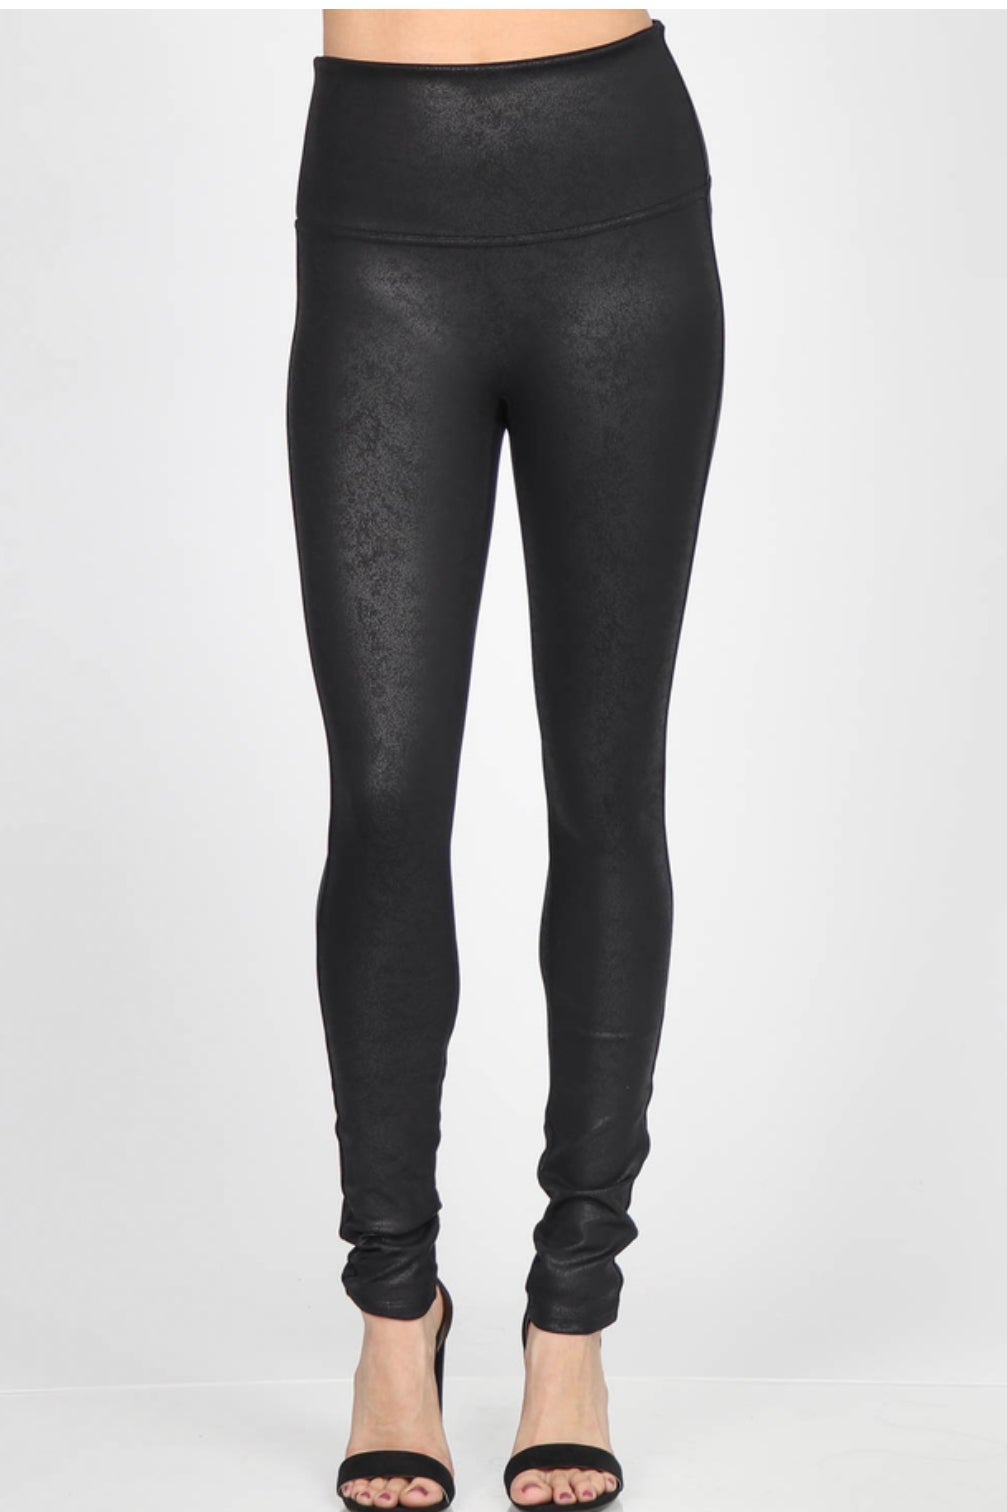 Image of Distressed Leather Leggings - M.Rena  LATE AUG